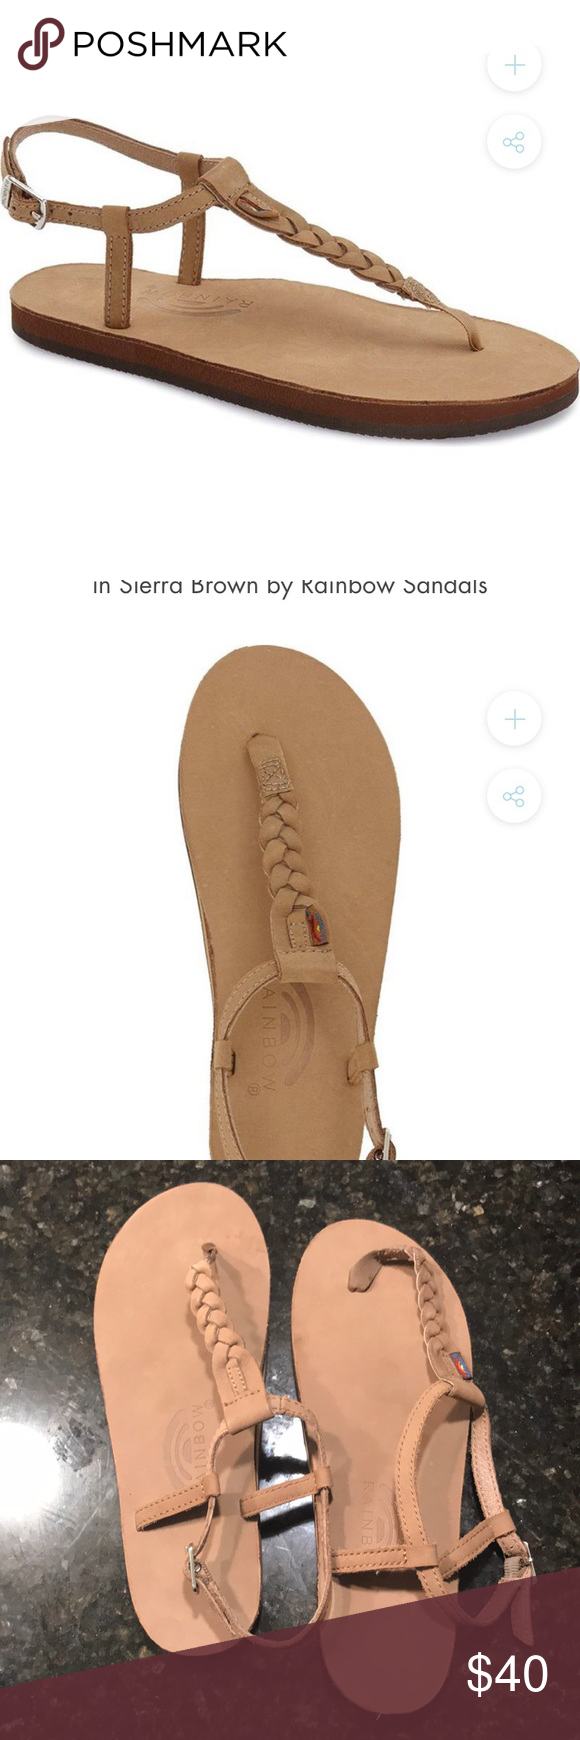 9bba5bff02a Tag is visible but scratched off. Size XL or women s 8.5-9.5. Light brown  color. Perfect condition. Purchased from Nordstrom Rack. Rainbow Shoes  Sandals